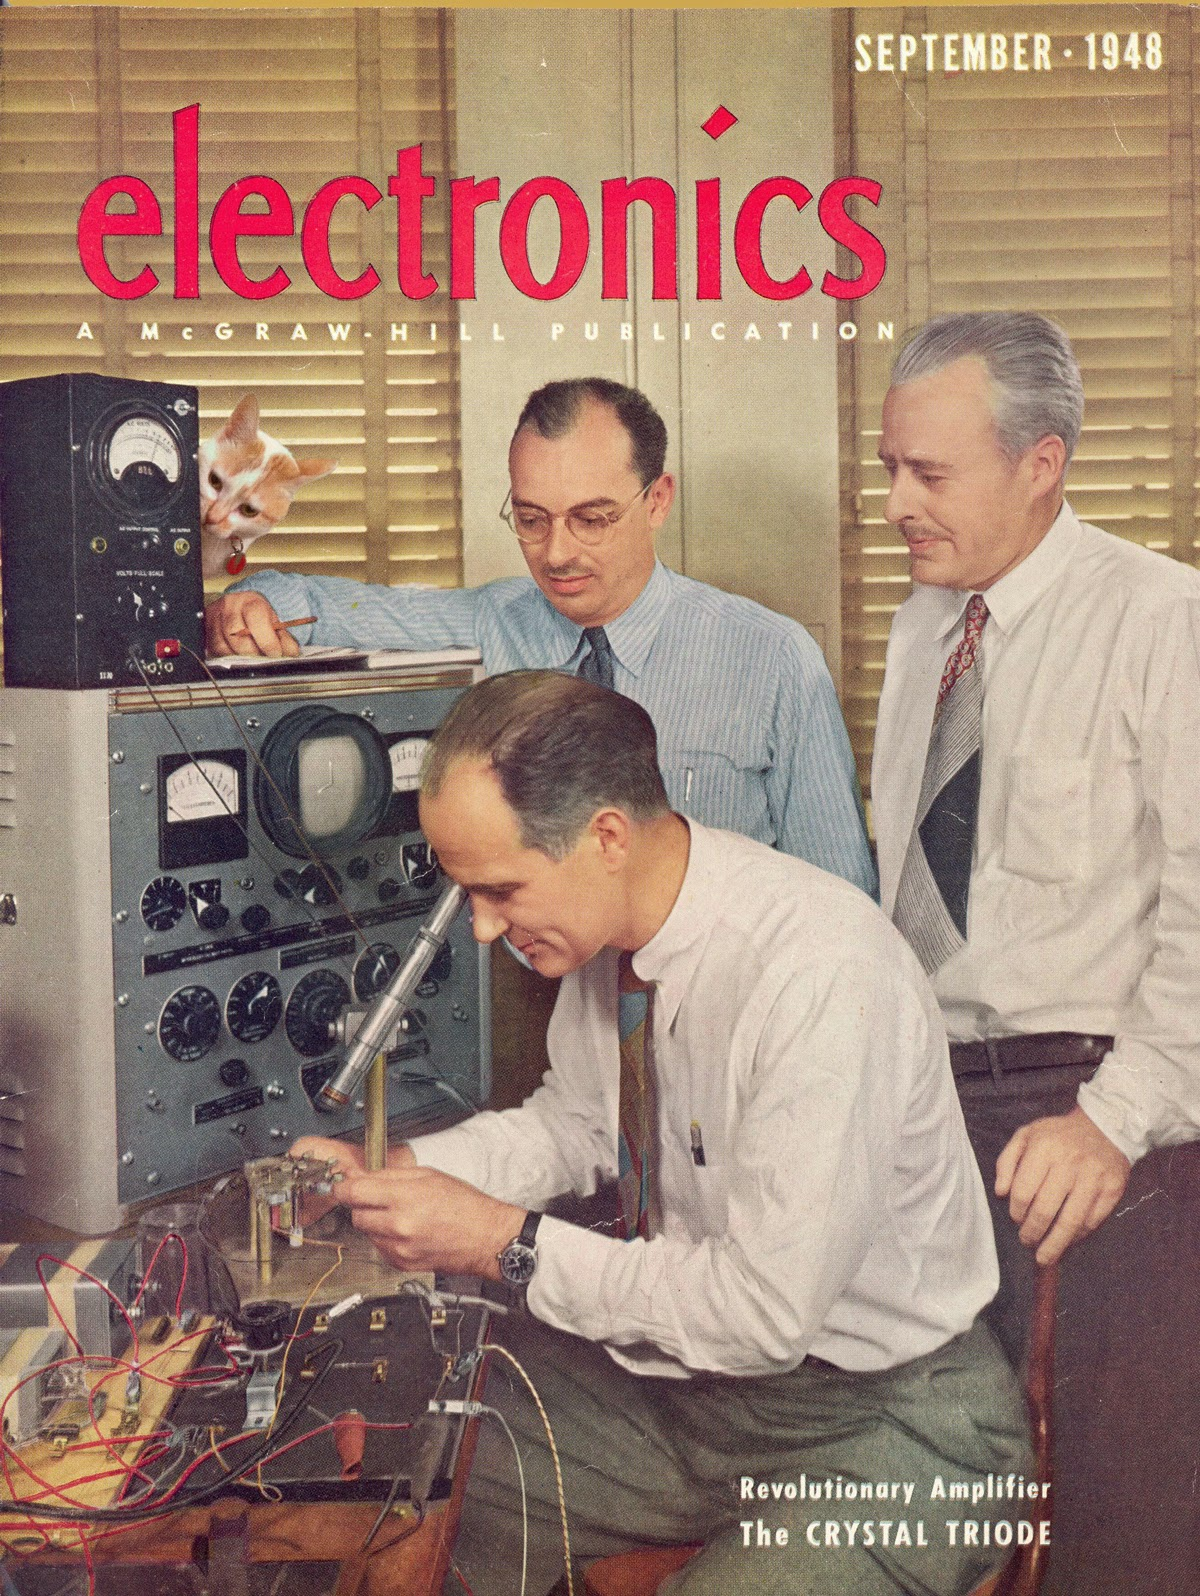 transistor electronics 1948 William Shockley John Bardeen Walter Brattain Bell Labs Chloe Cat Josef Spalenka